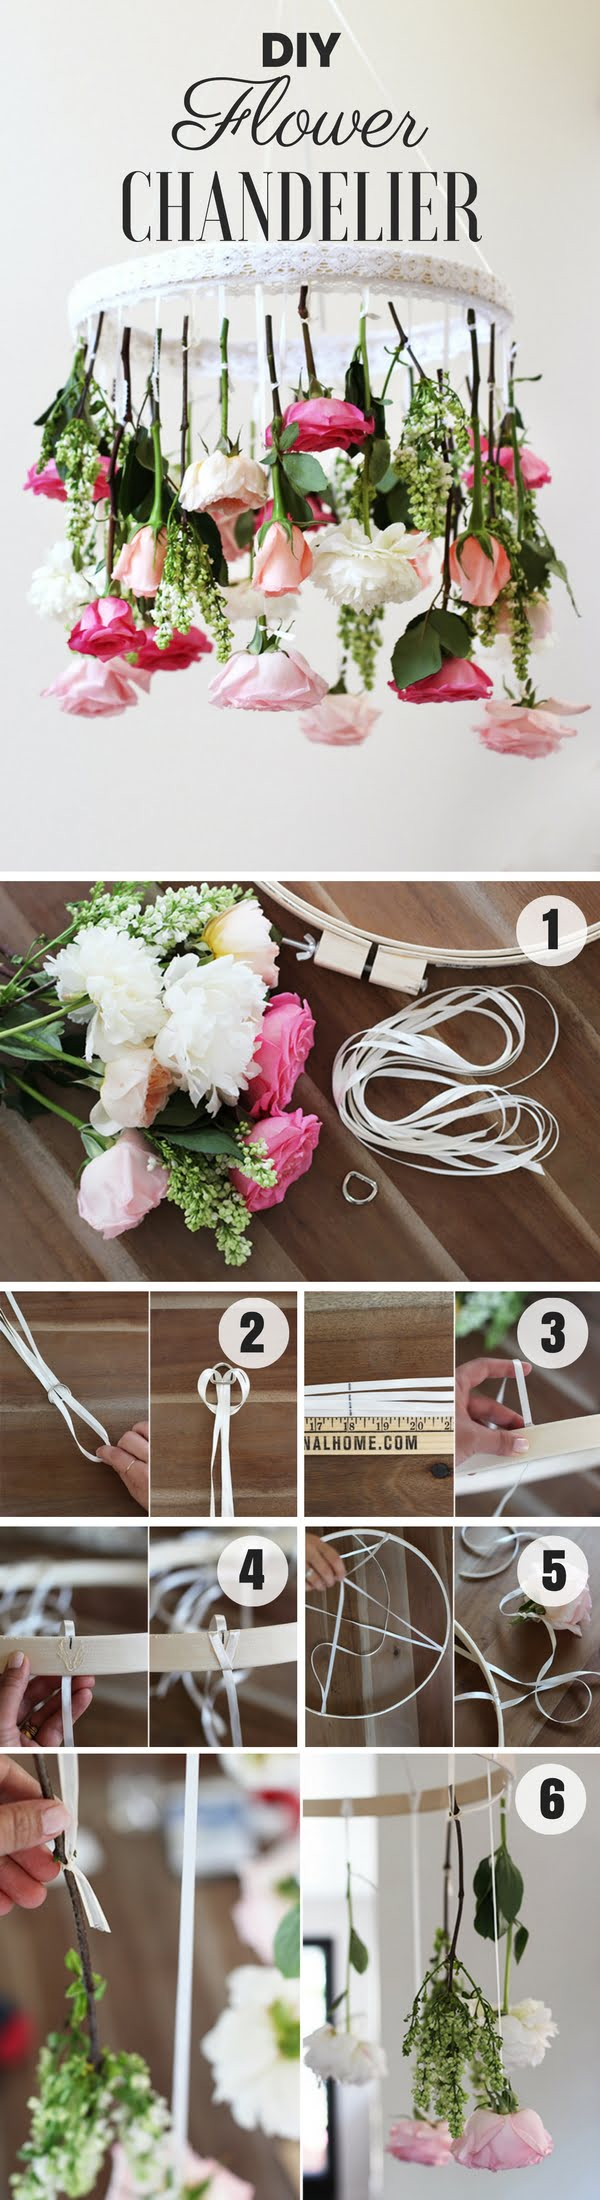 Check out how to make an easy shabby chic DIY Fflower Chandelier